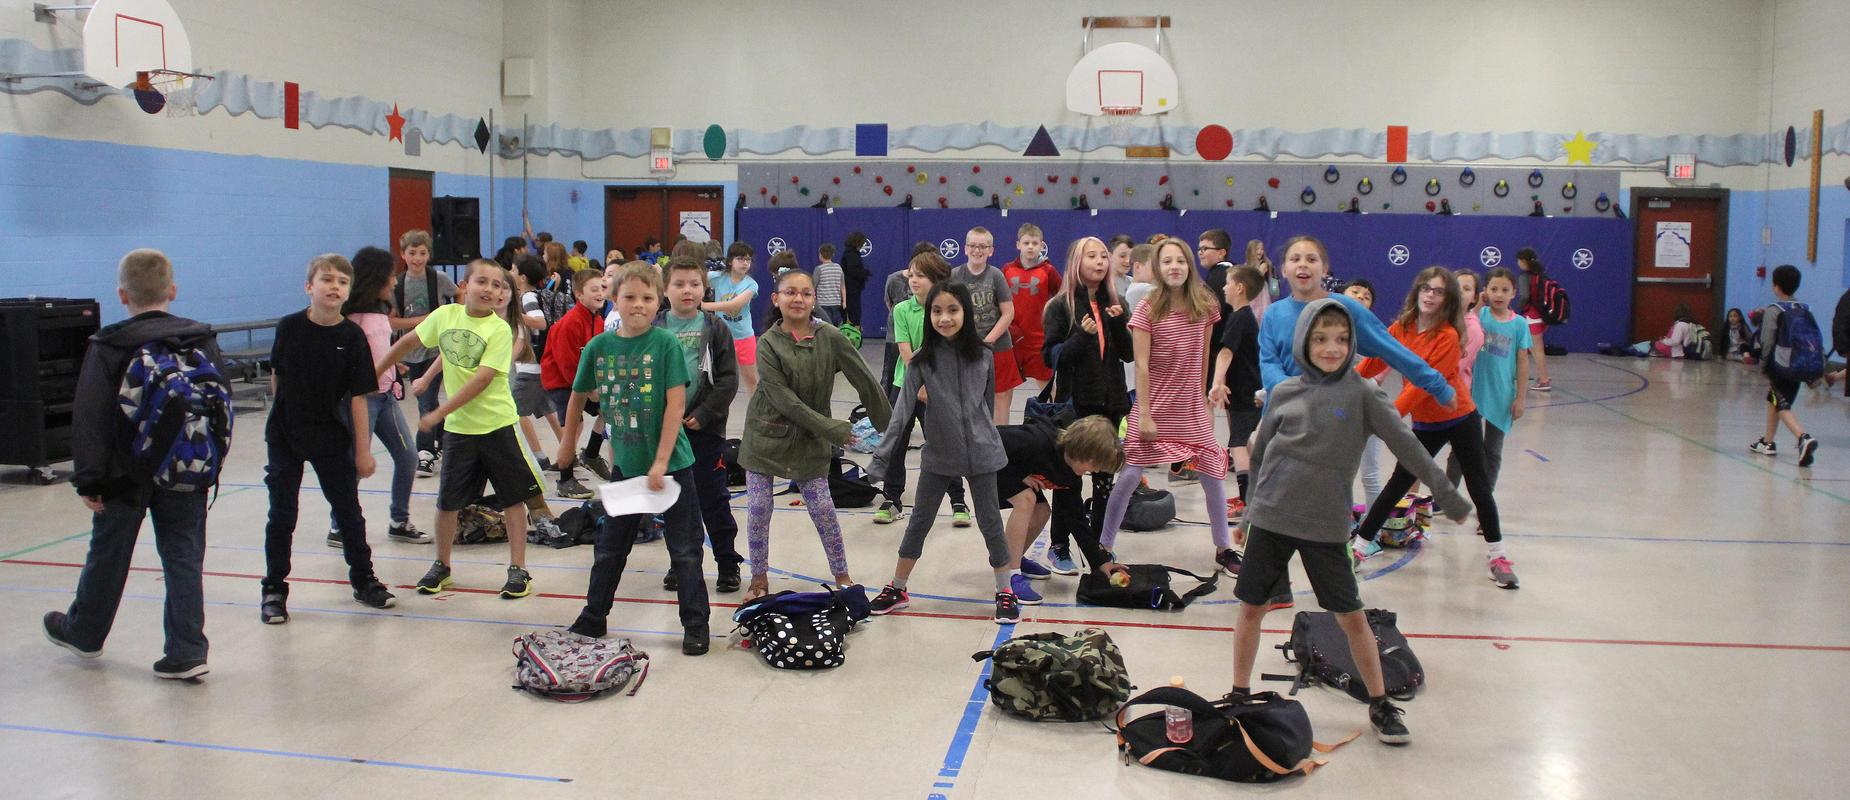 Students dancing before school